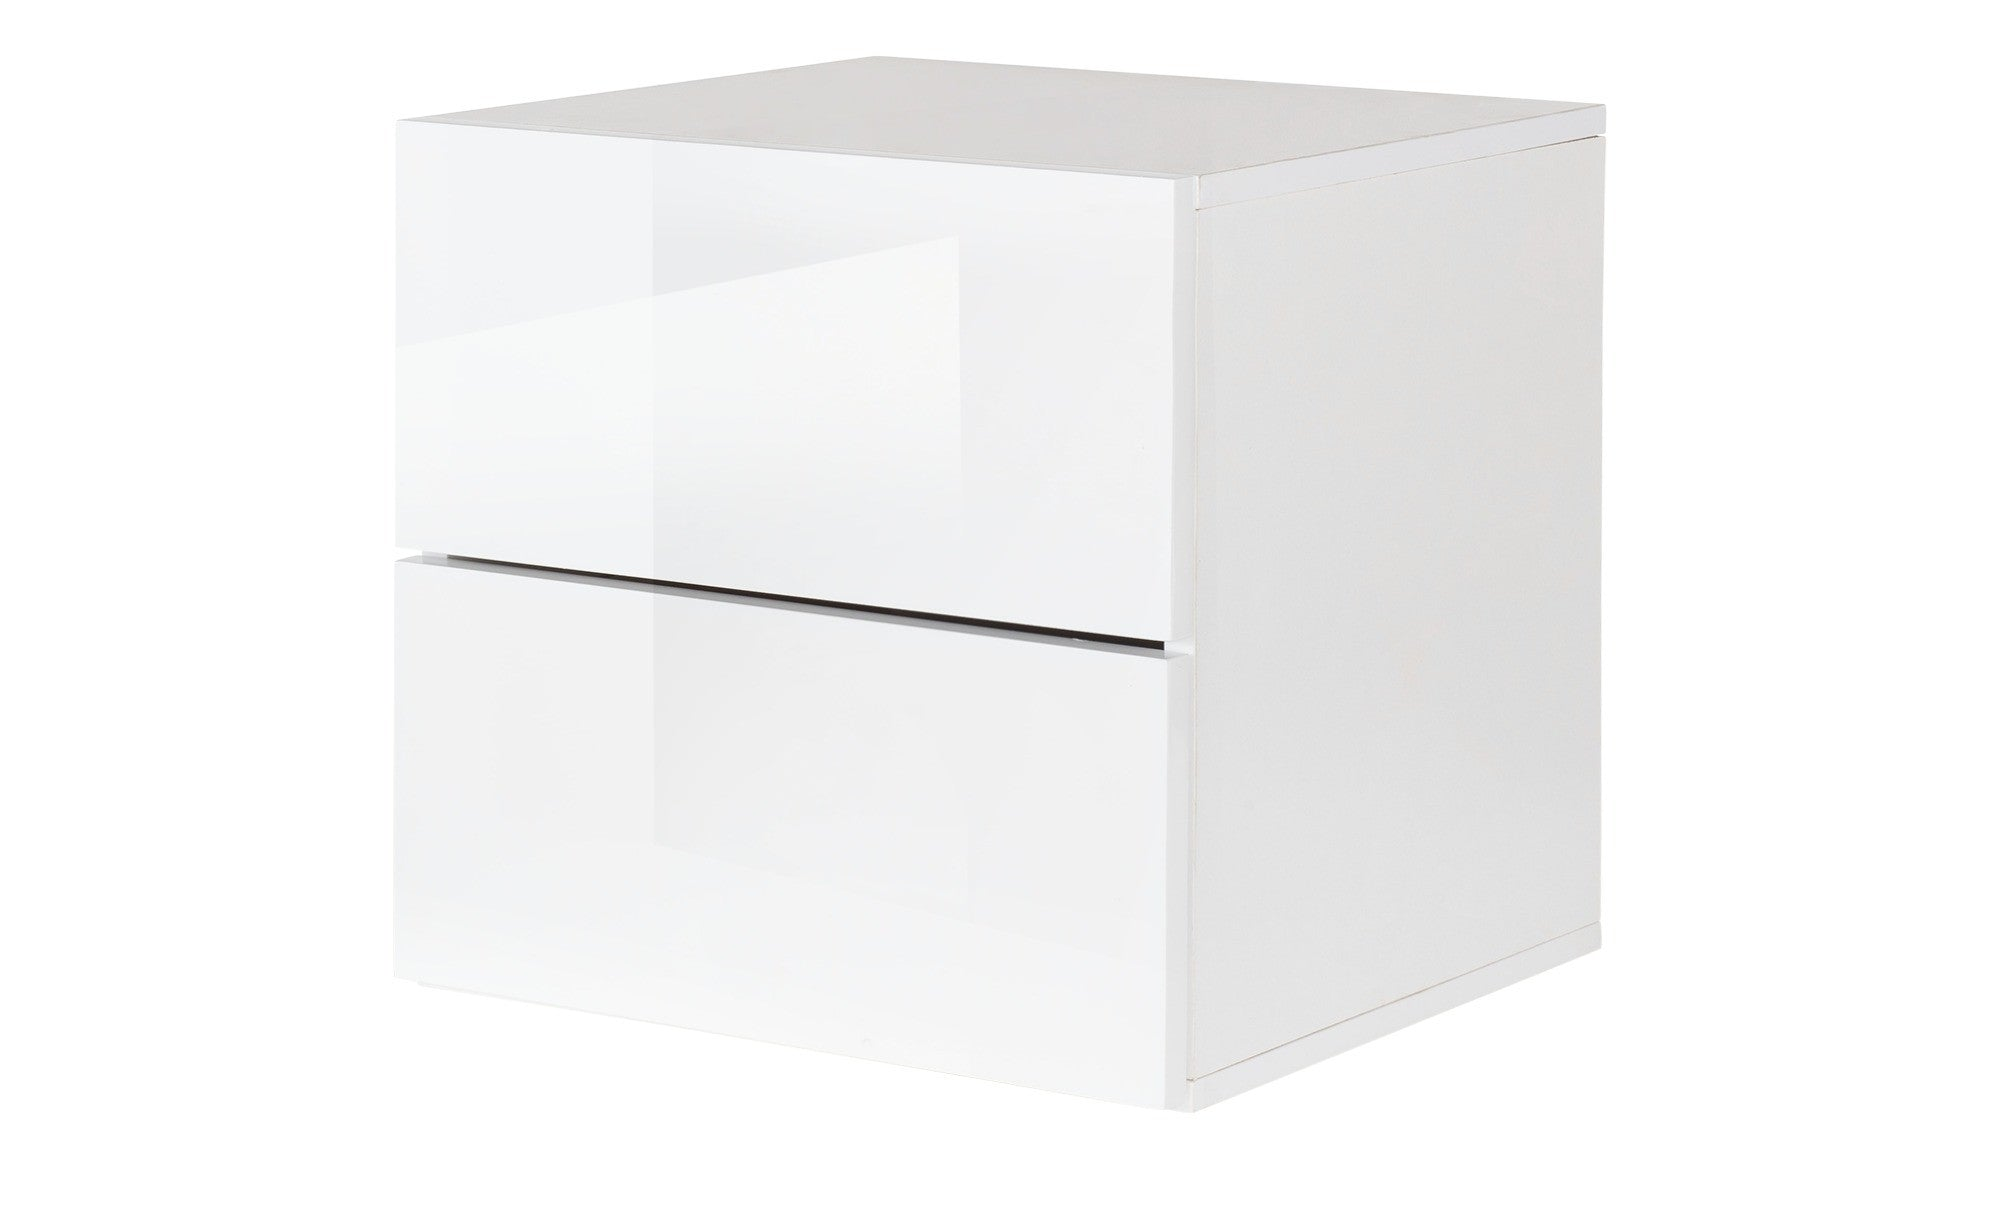 Prana   Drawer Container With White High Gloss Finish, Push Open System